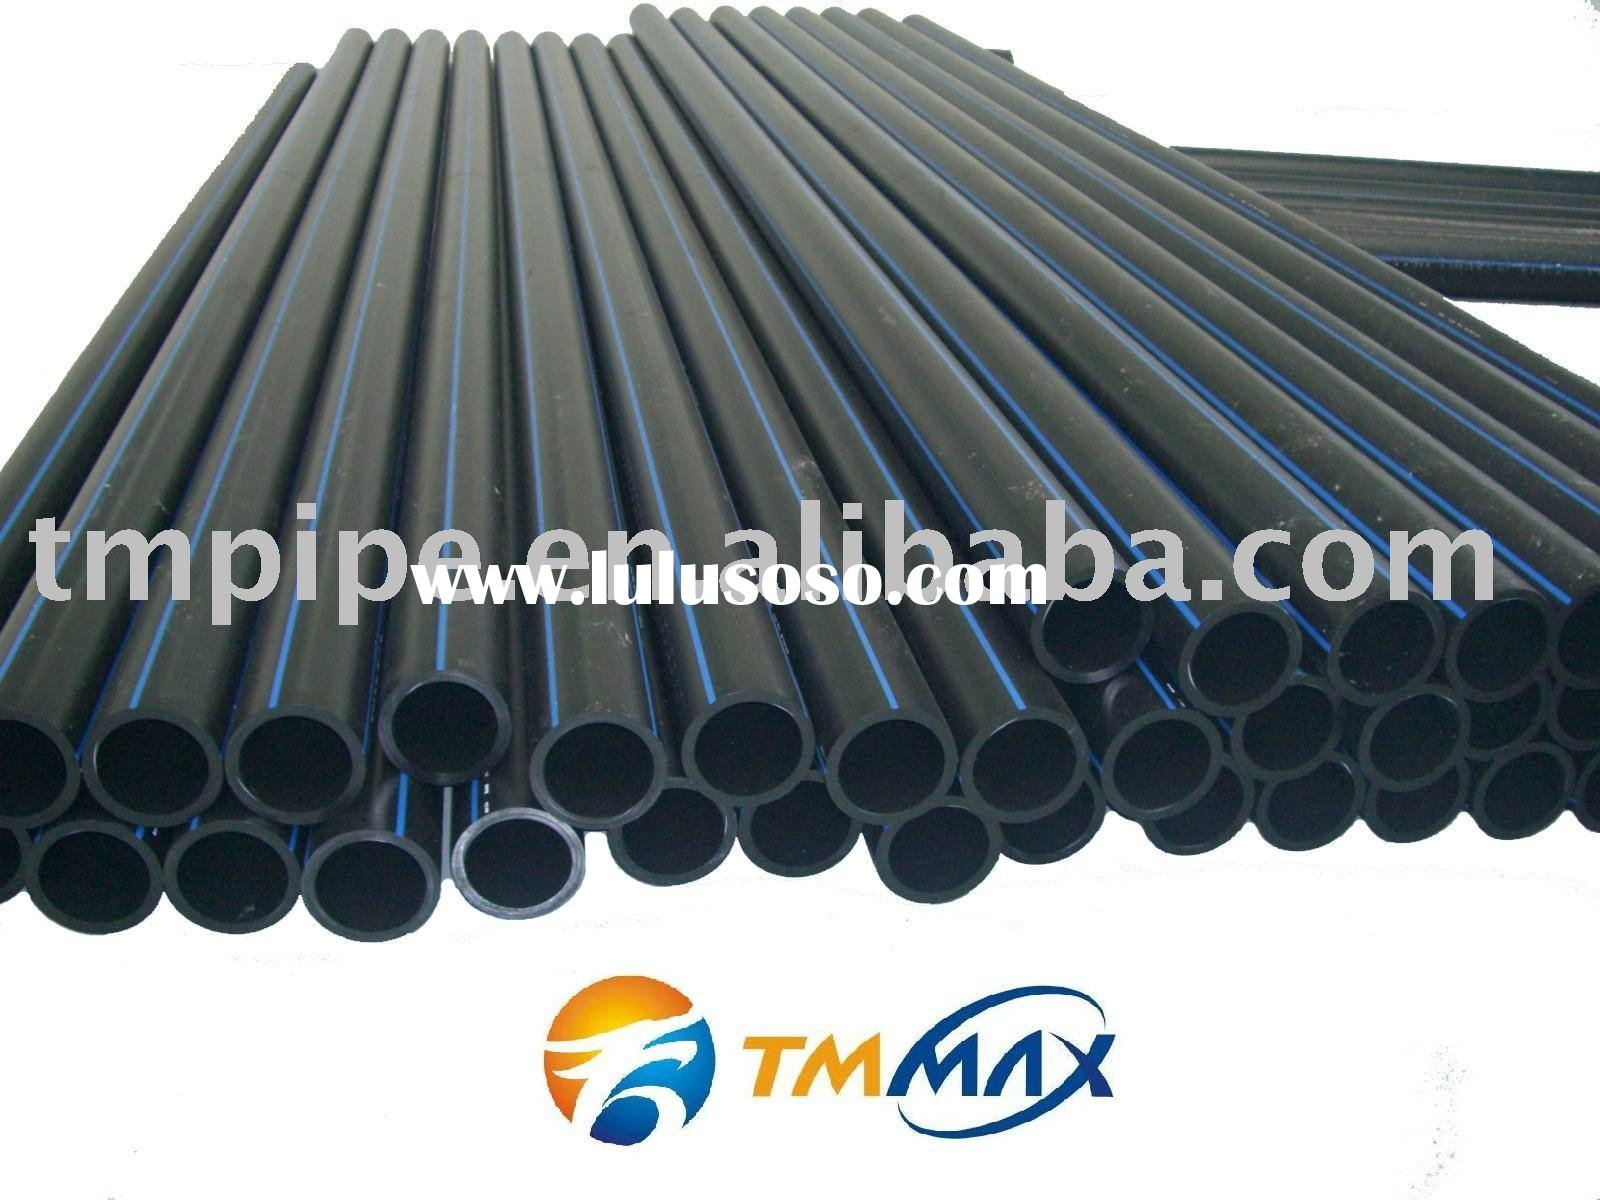 Plastic Pipe,HDPE Water Pipe,HDPE Pipe For Water Supply,PE Water Pipe,PE Tube